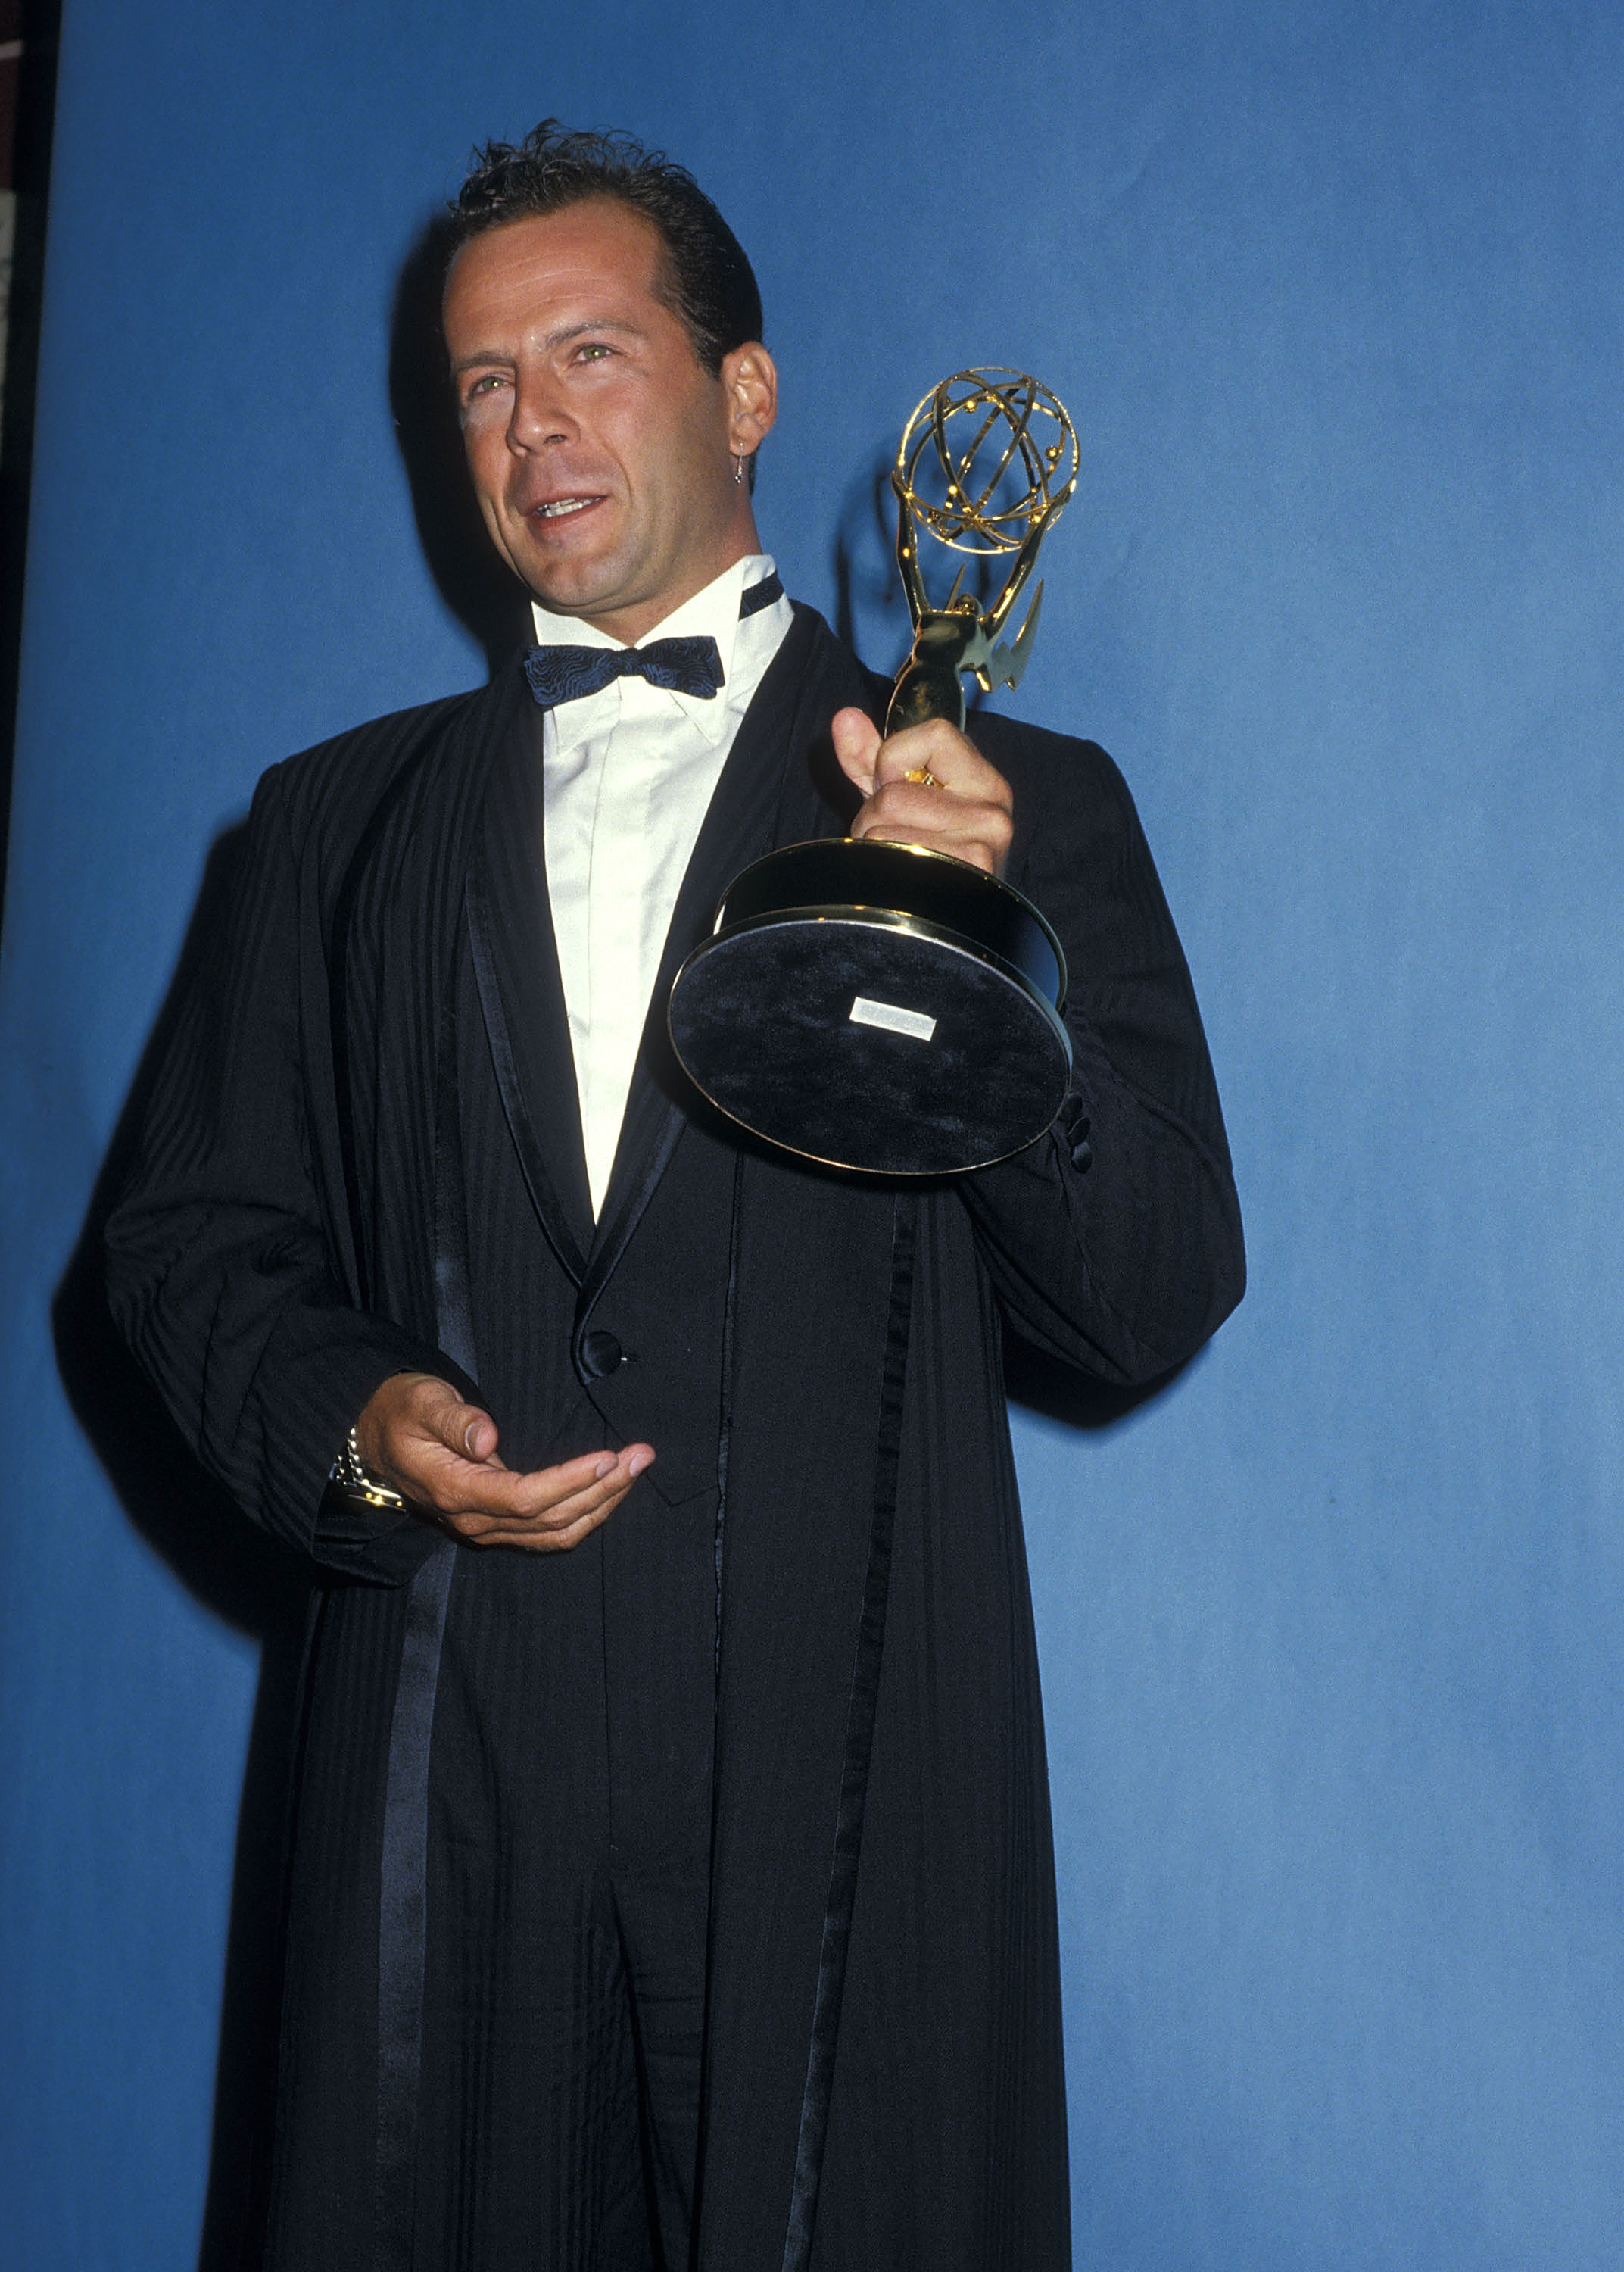 Actor Bruce Willis attends the 39th Annual Primetime Emmy Awards on September 20, 1987 at the Pasadena Civic Auditorium in Pasadena, California.